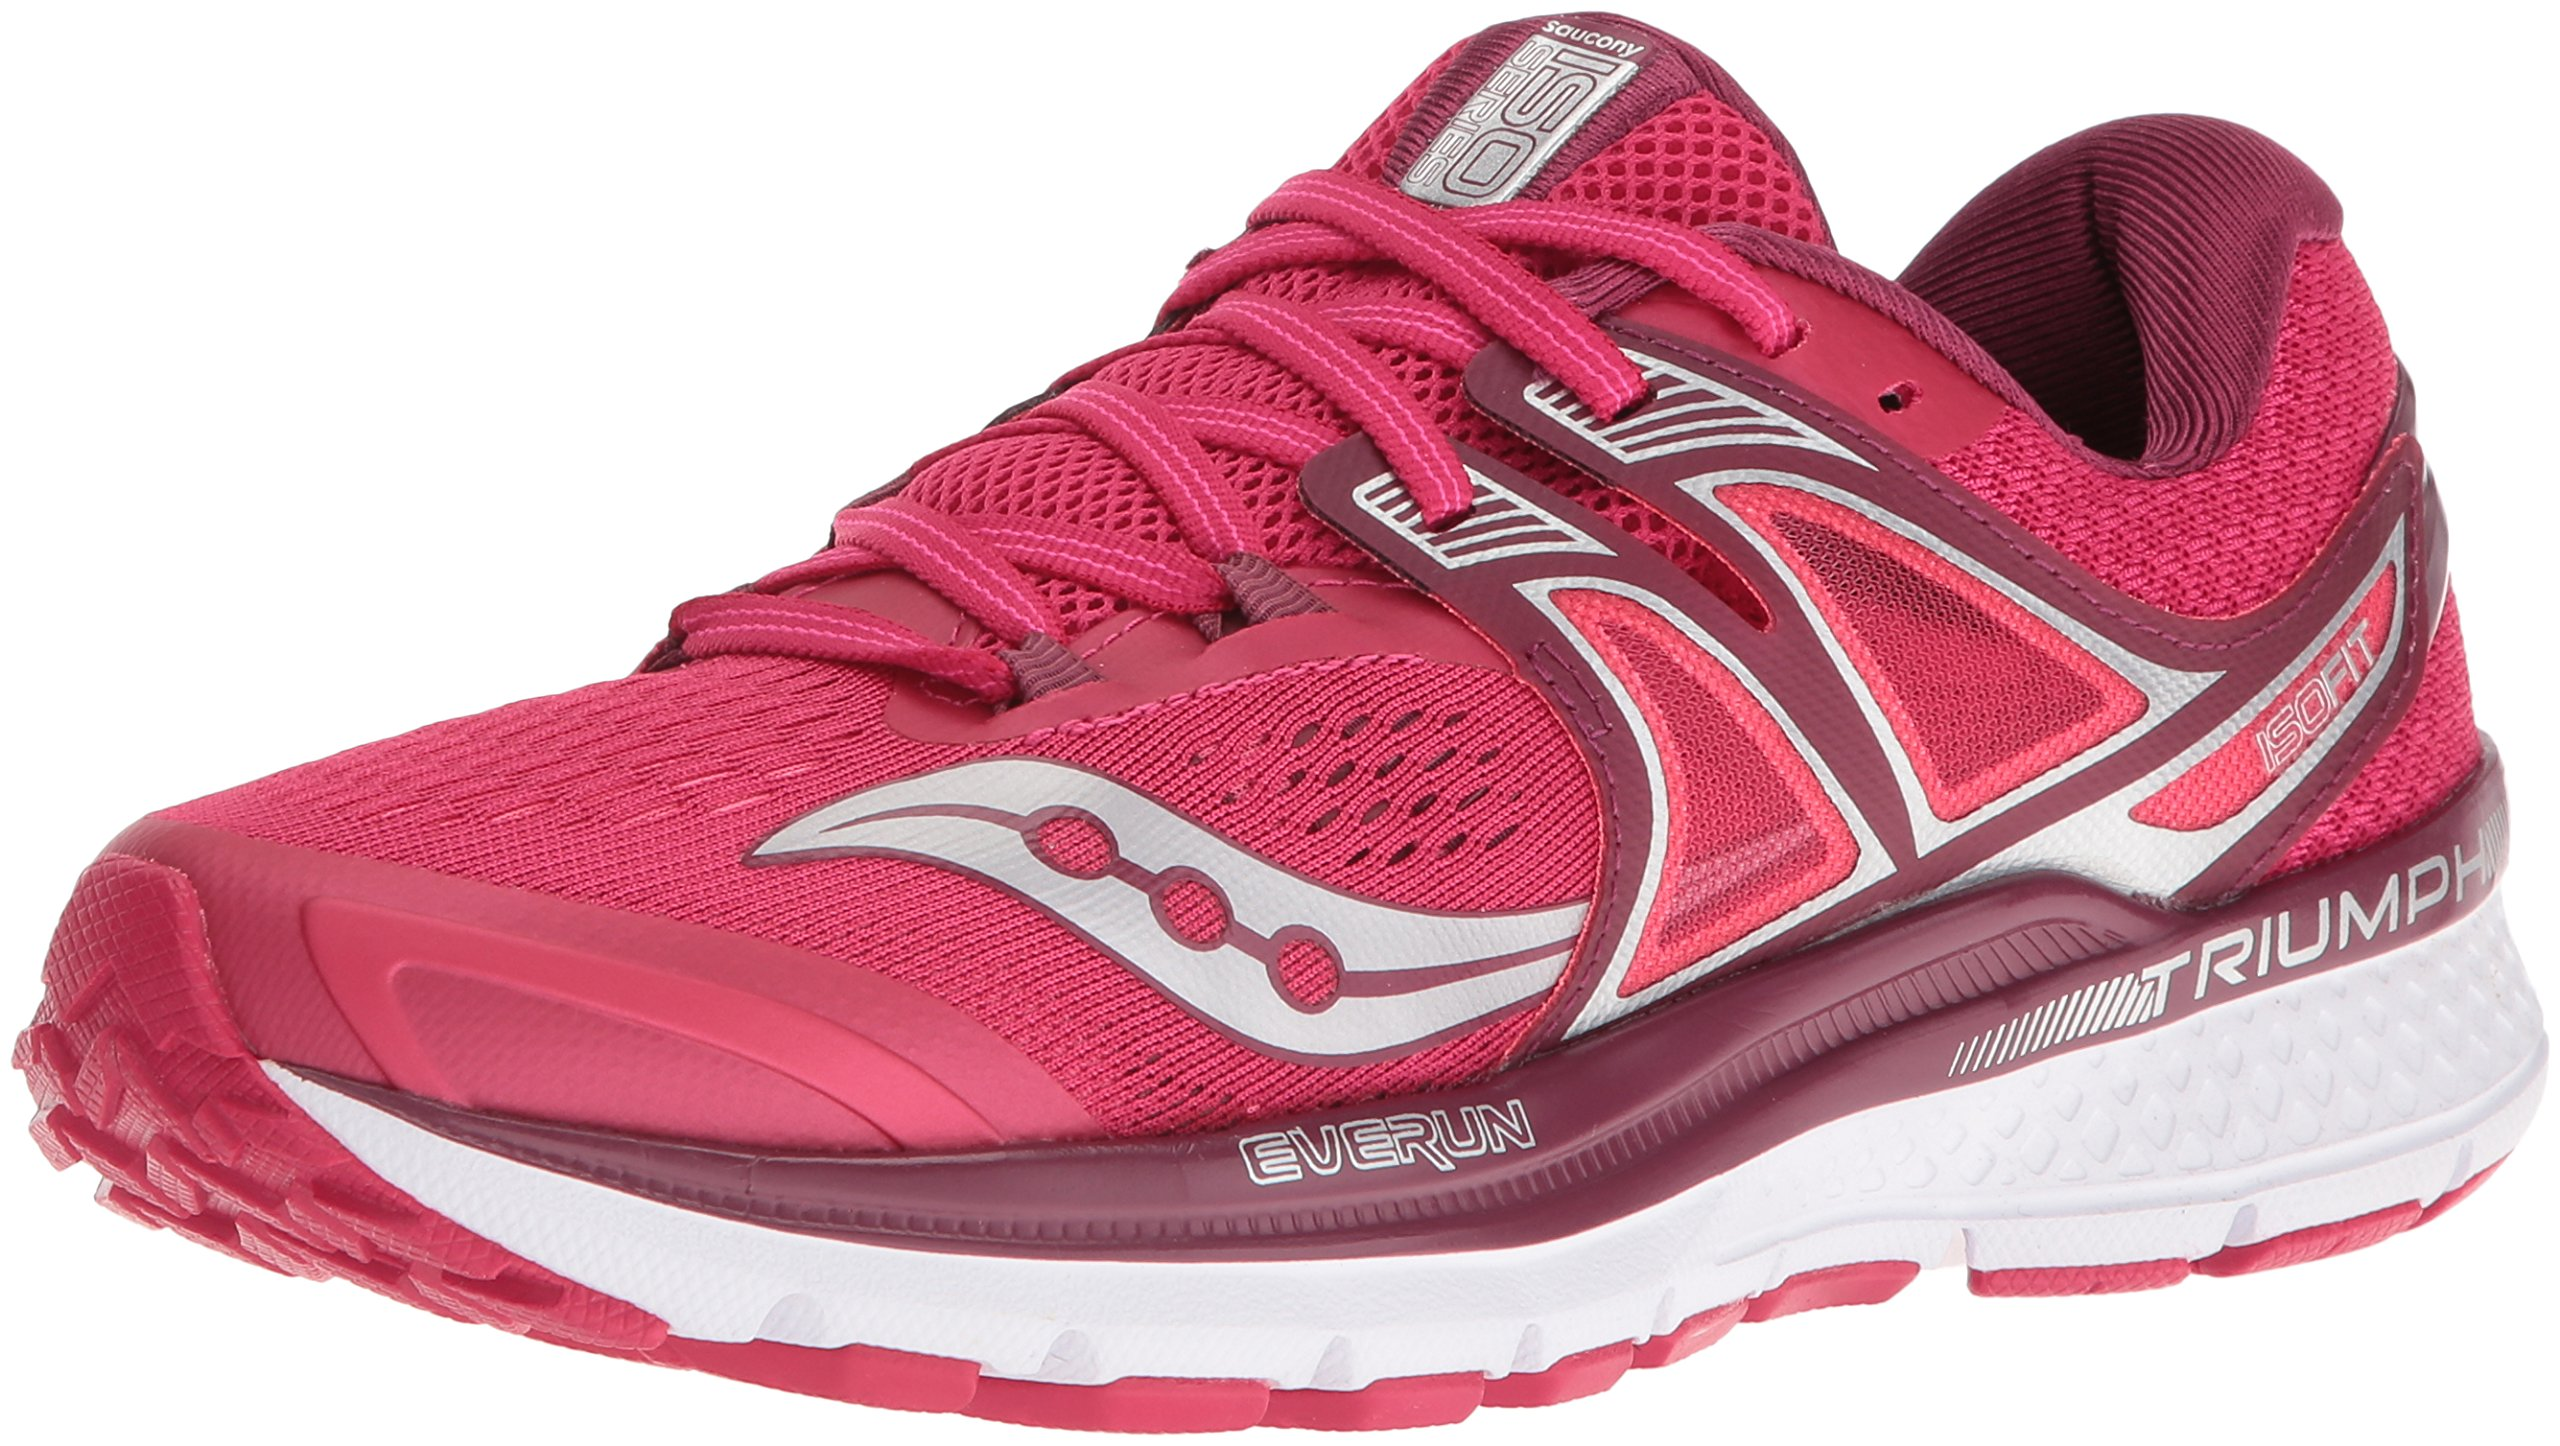 Saucony Women's Triumph Iso 3 Running Shoe, Pink/Berry/Silver, 7.5 M US